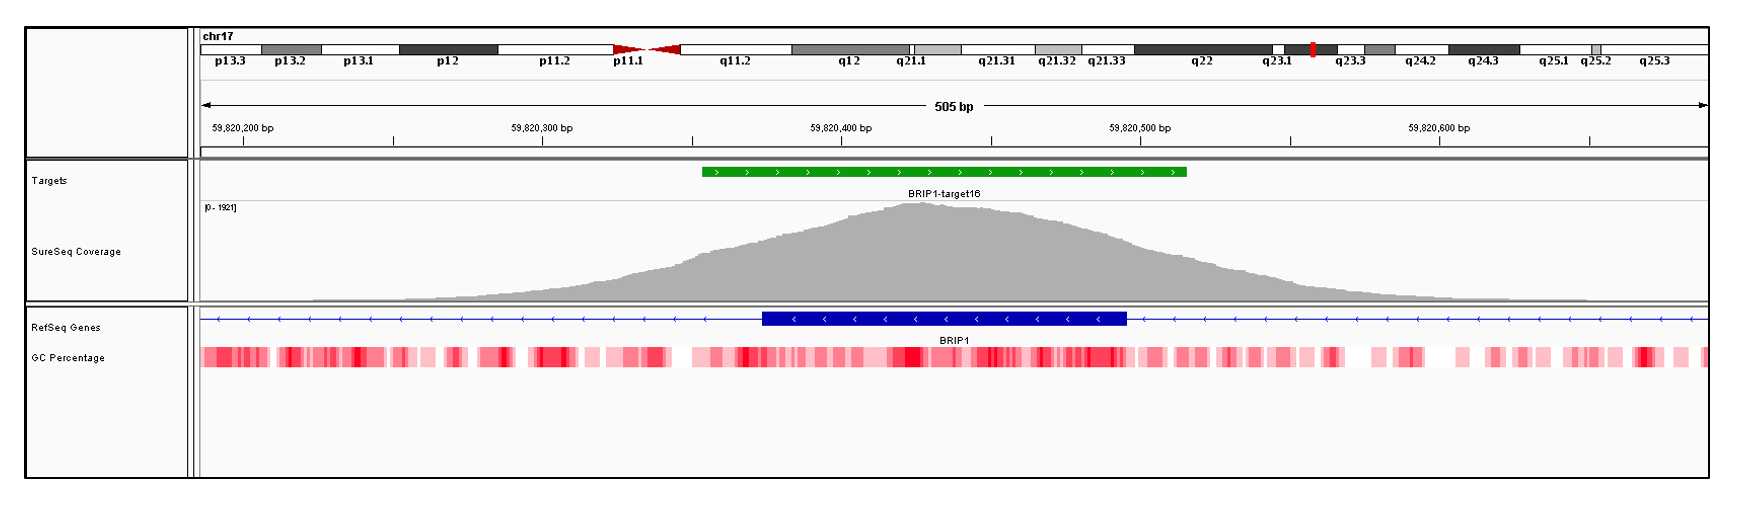 BRIP1 Exon 16 (hg19 chr17:59820374-59820495). Depth of coverage per base (grey). Targeted region (green). Gene coding region as defined by RefSeq (blue). GC percentage (red). Image